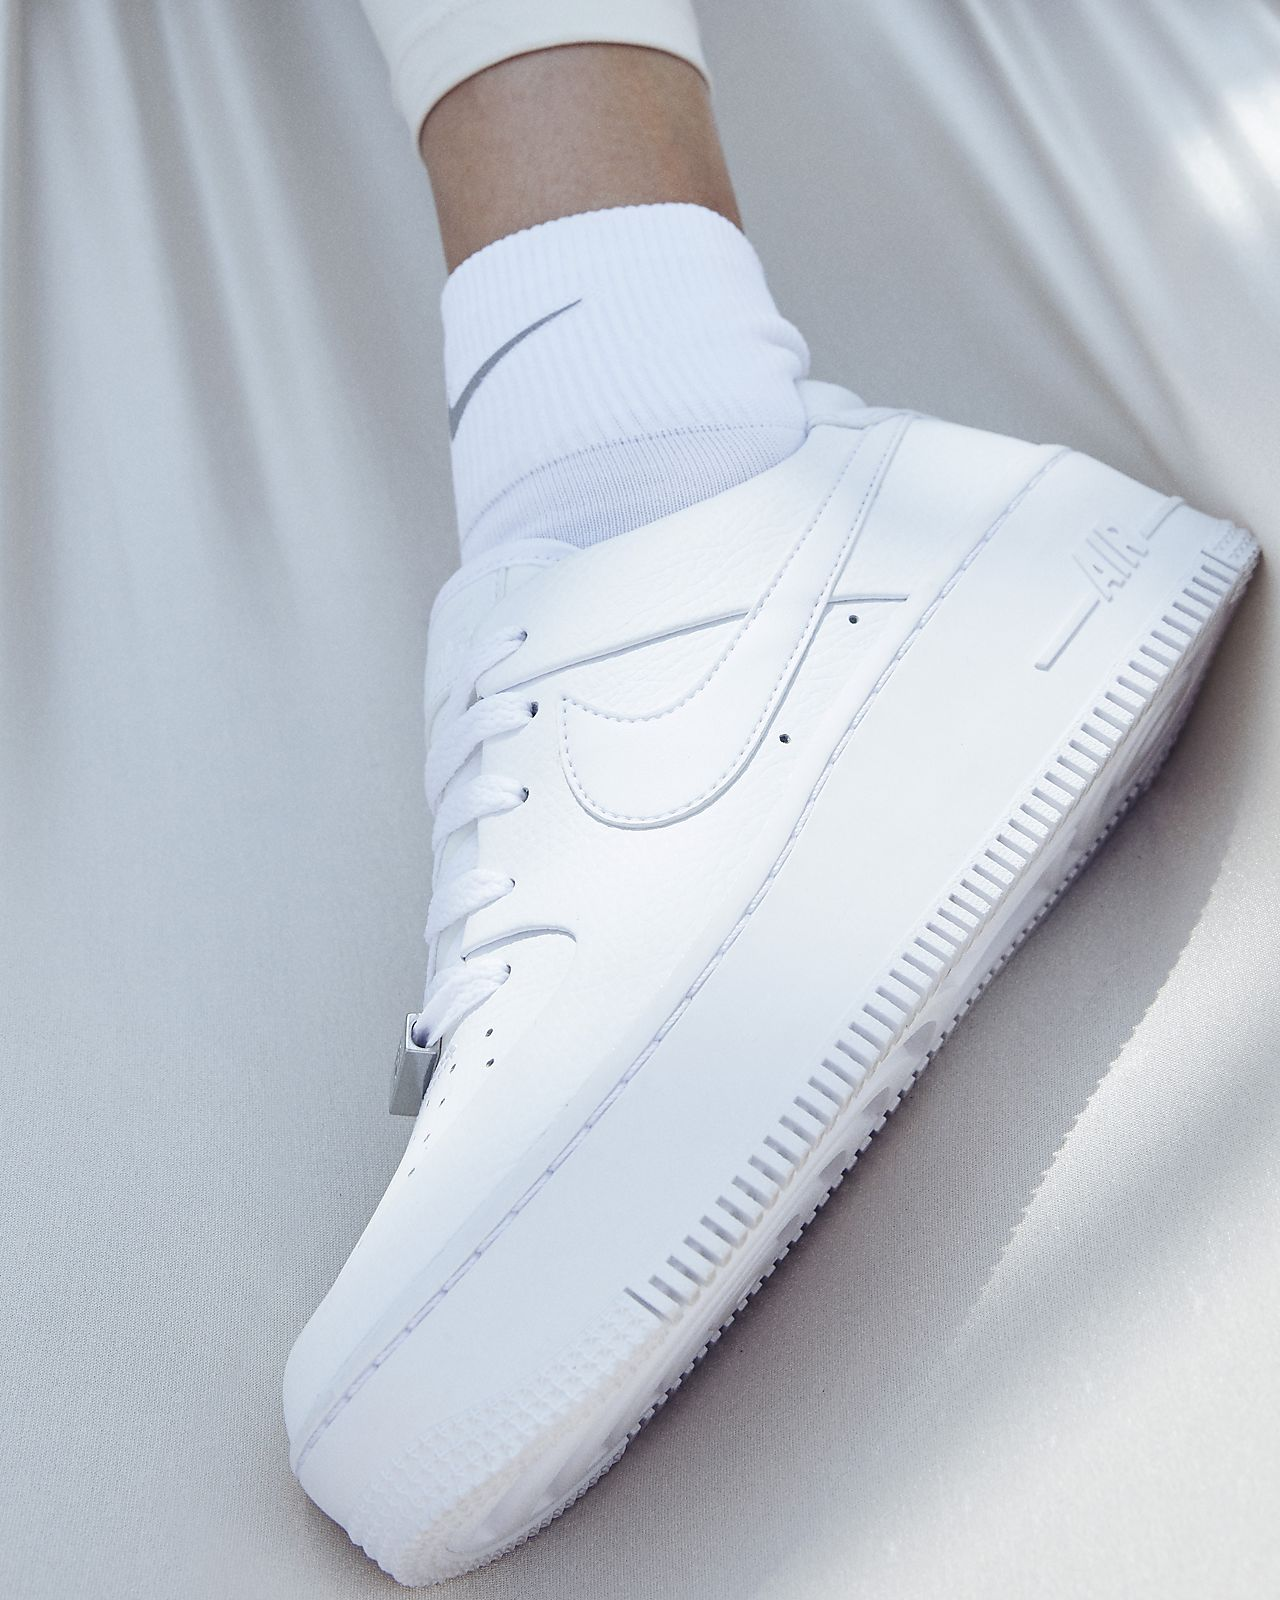 2019 air force 1 scarpa nikr 07 premium donna bianco